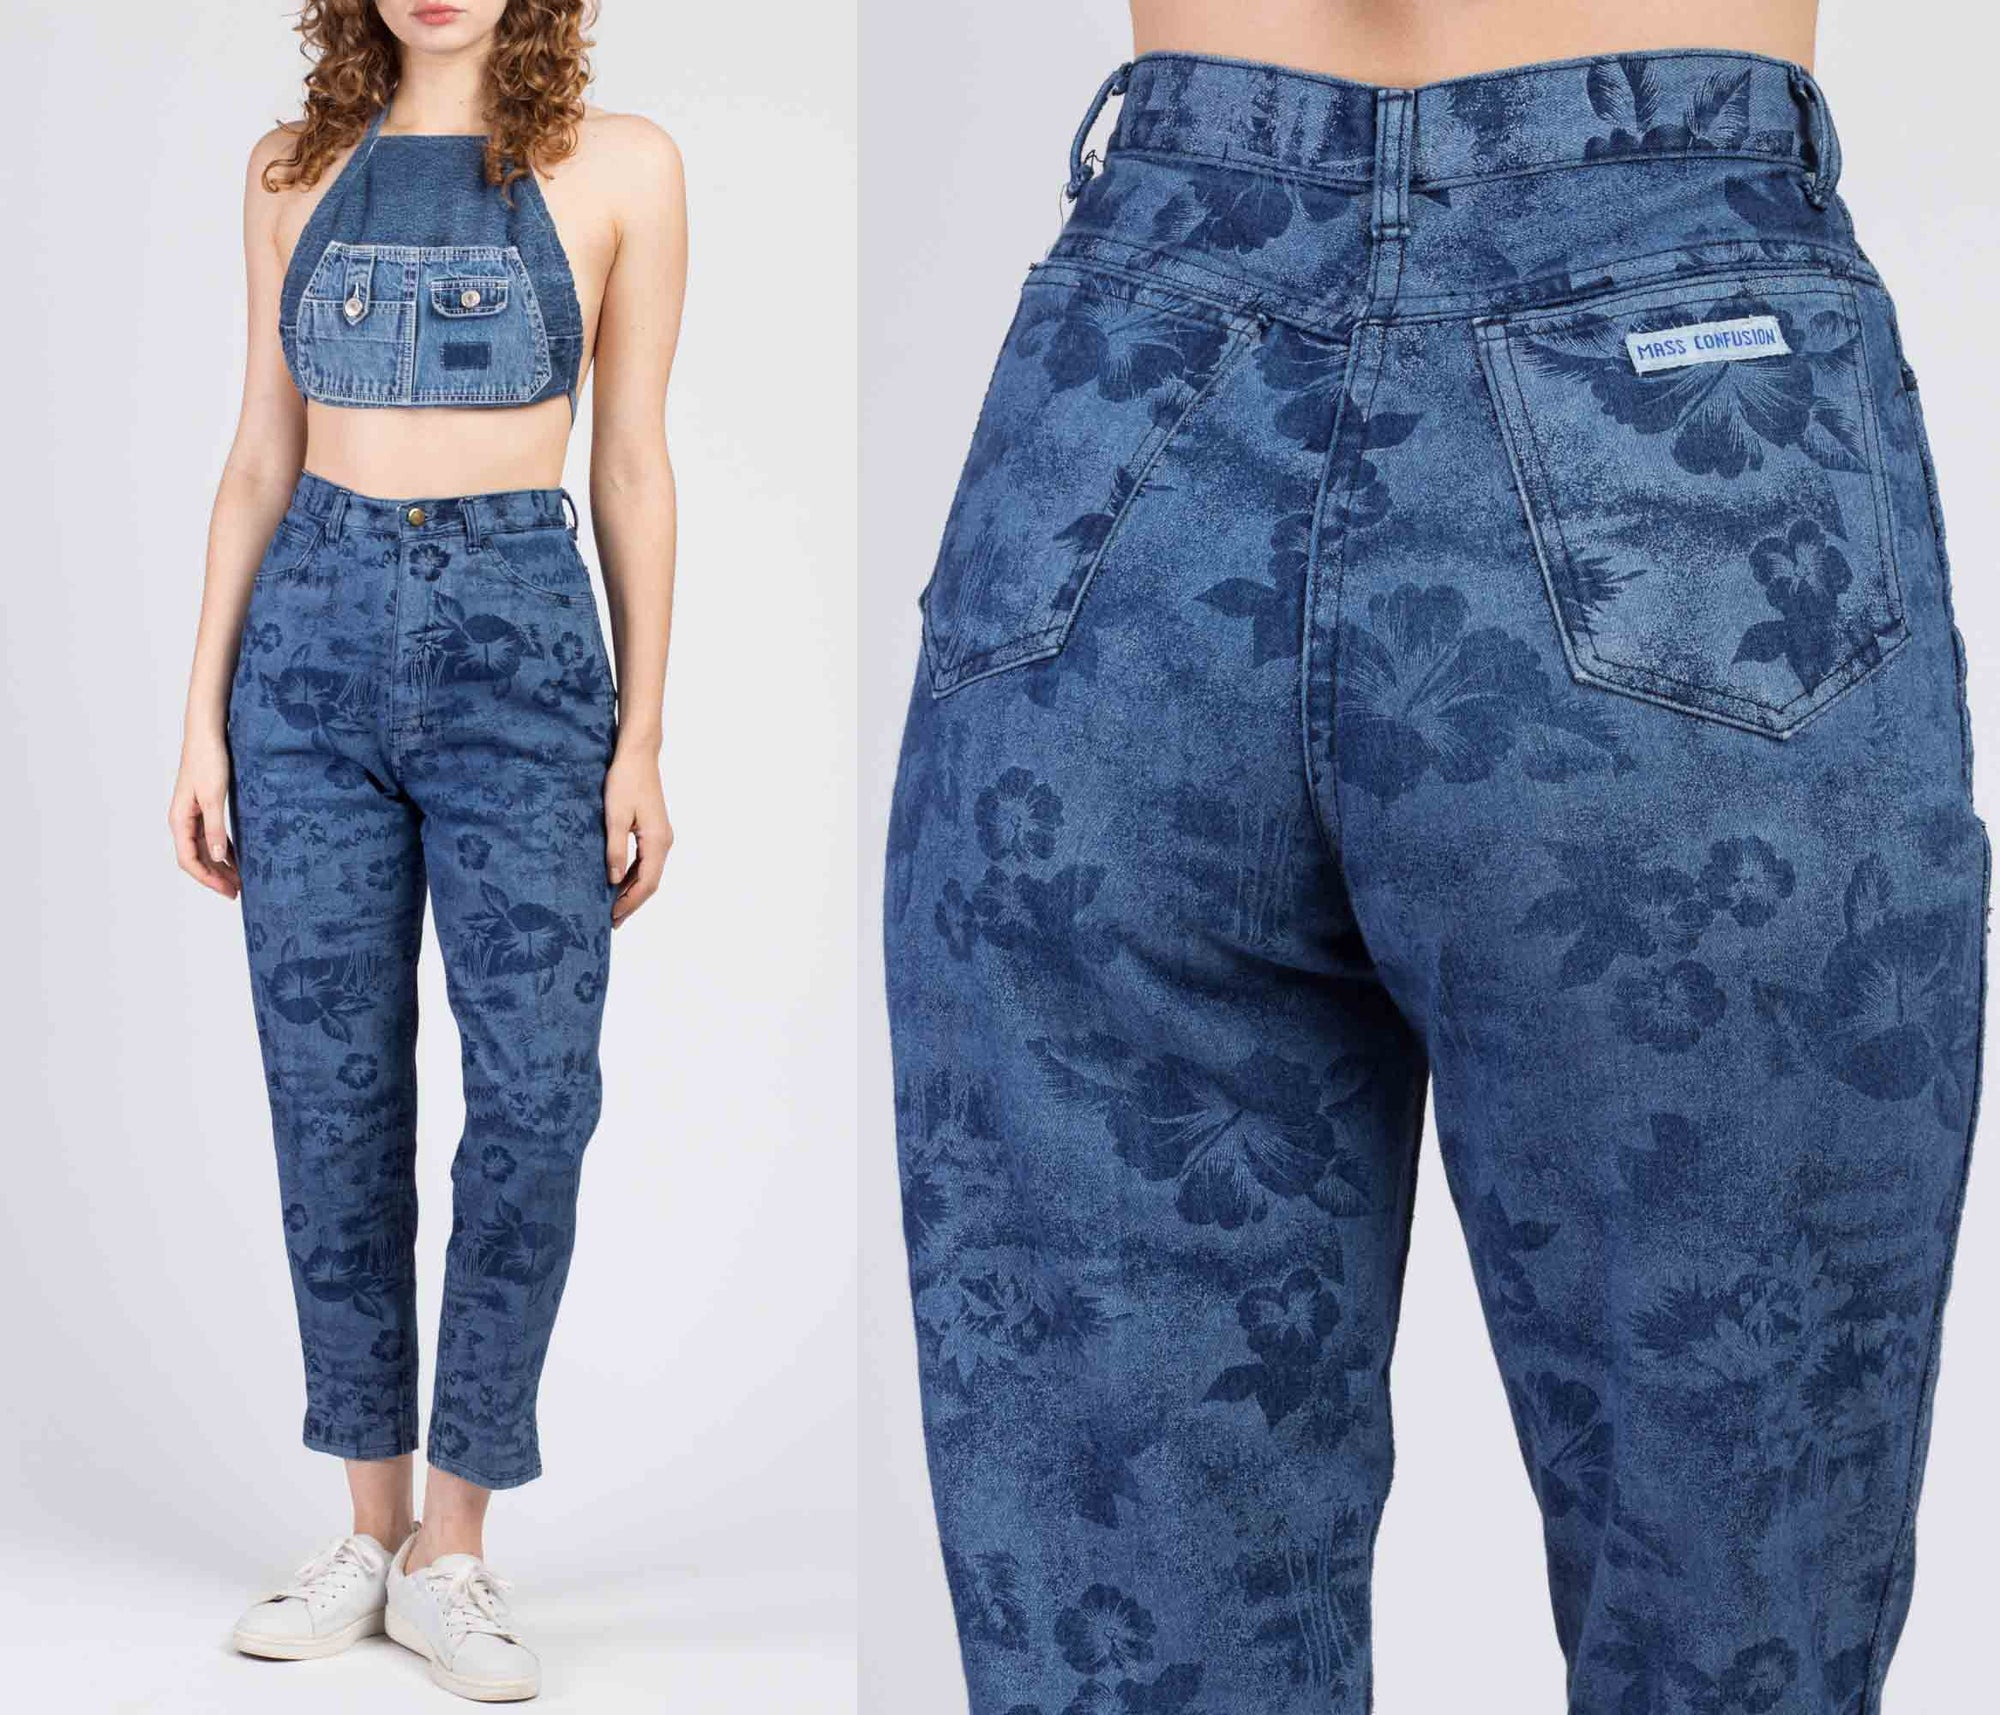 90s Mass Confusion Floral Denim Jeans - Small